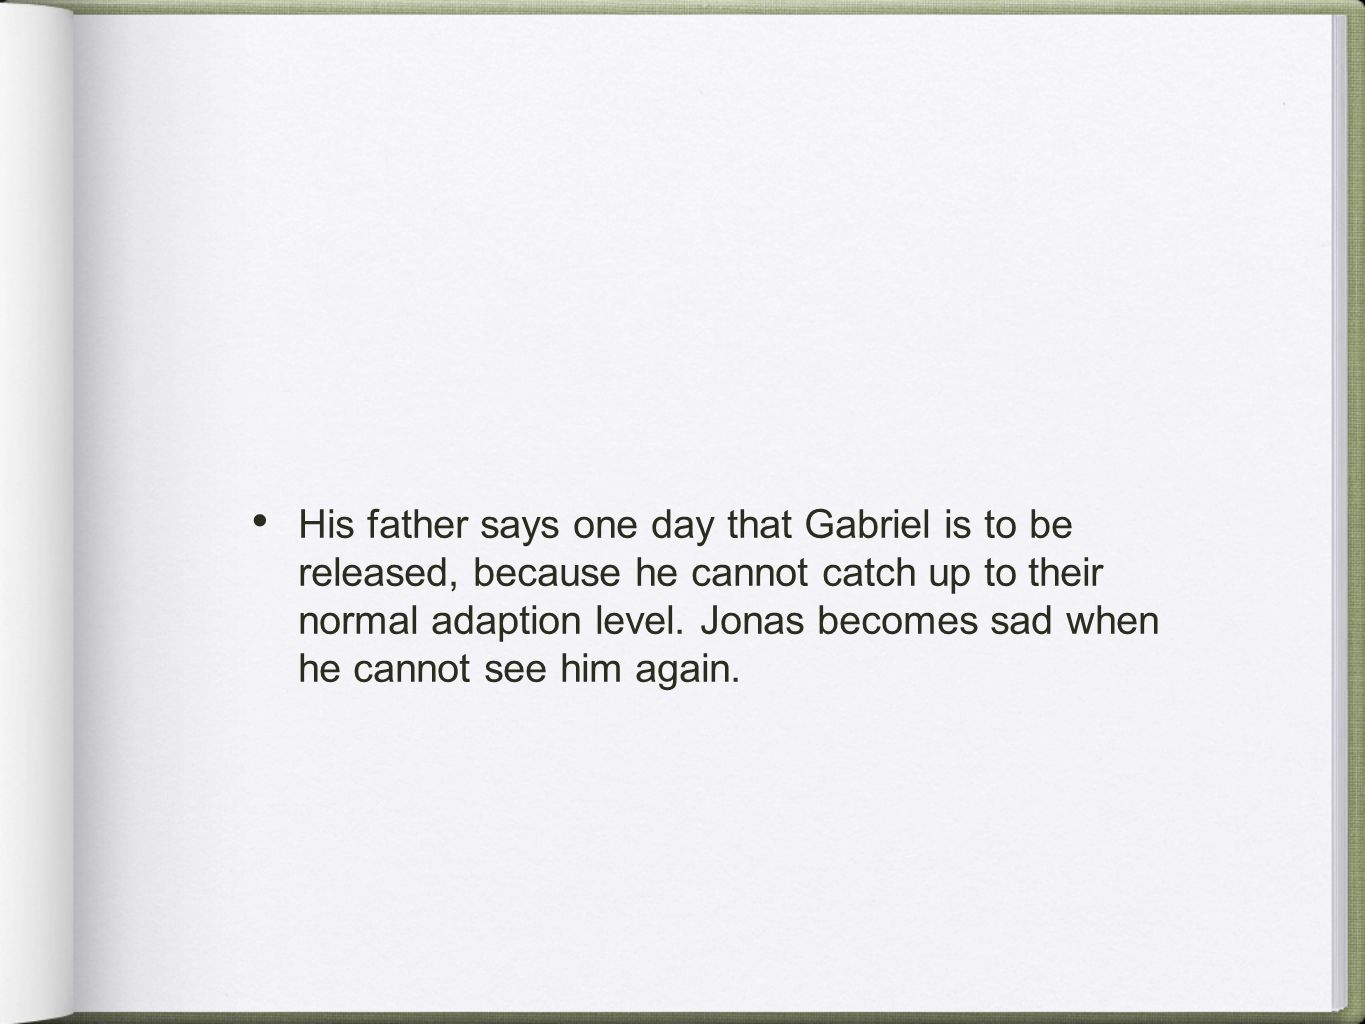 His father says one day that Gabriel is to be released, because he cannot catch up to their normal adaption level. Jonas becomes sad when he cannot se